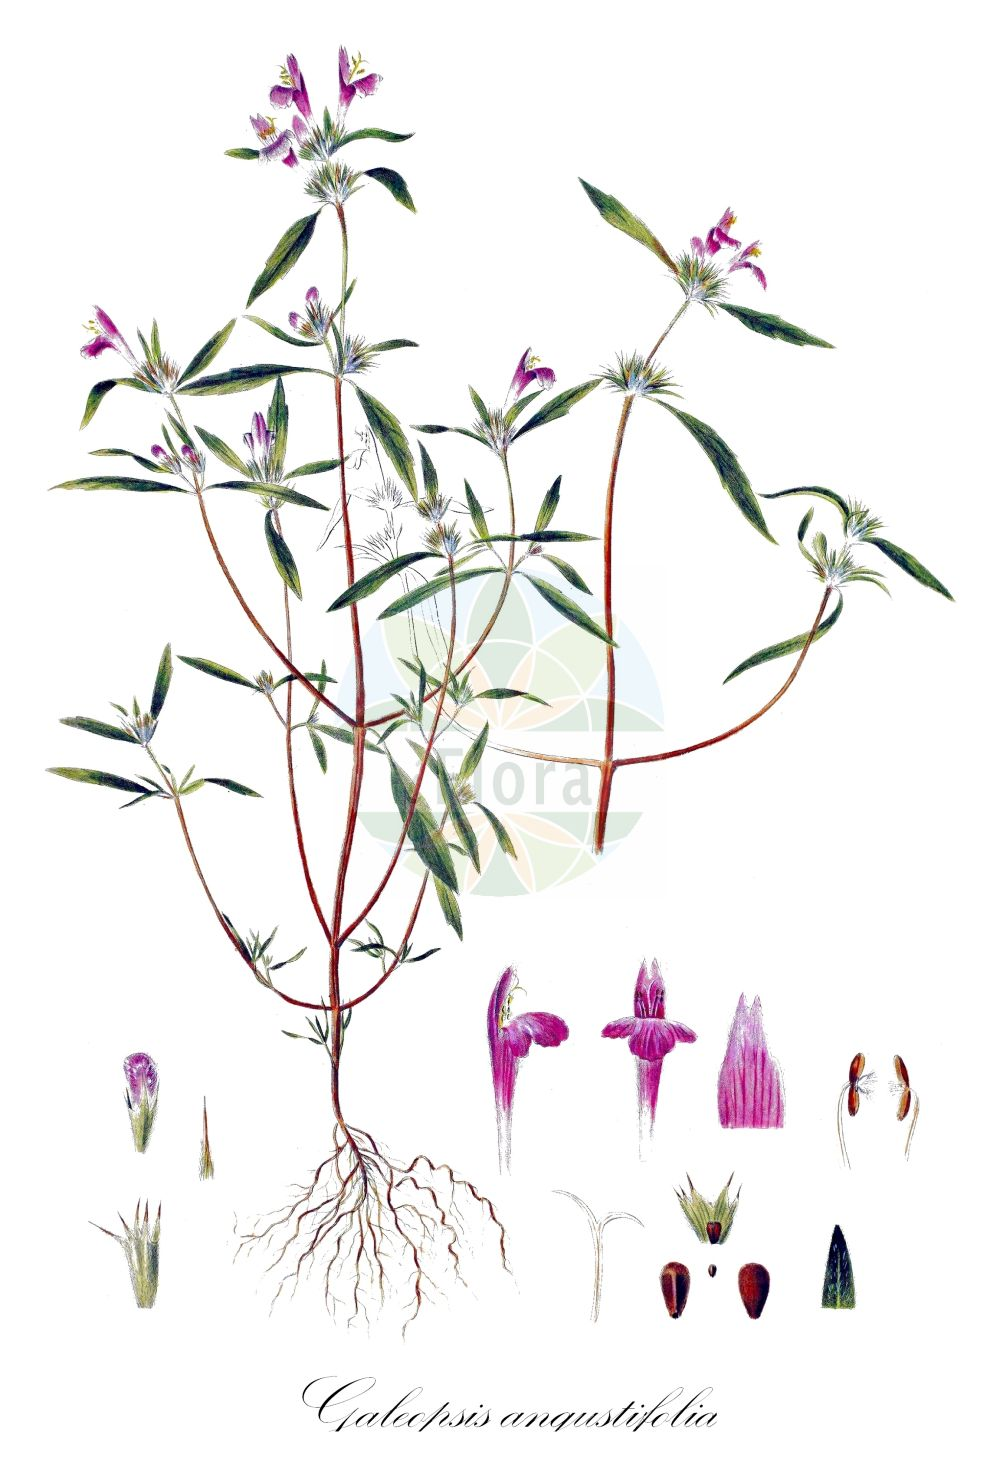 Historische Abbildung von Galeopsis angustifolia (Schmalblaettriger Hohlzahn - Red Hemp-nettle). Das Bild zeigt Blatt, Bluete, Frucht und Same. ---- Historical Drawing of Galeopsis angustifolia (Schmalblaettriger Hohlzahn - Red Hemp-nettle).The image is showing leaf, flower, fruit and seed.(Galeopsis angustifolia,Schmalblaettriger Hohlzahn,Red Hemp-nettle,Dalanum angustifolium,Ladanella angustifolia,Ladanum angustifolium,Narrow-leaved Hemp-Nettle,Narrowleaf Hempnettle,Lesser Hemp-nettle,Galeopsis,Hohlzahn,Hempnettle,Lamiaceae,Lippenbluetengewaechse;Lippenbluetler,Nettle family,Blatt,Bluete,Frucht,Same,leaf,flower,fruit,seed,Oeder (1761-1883))